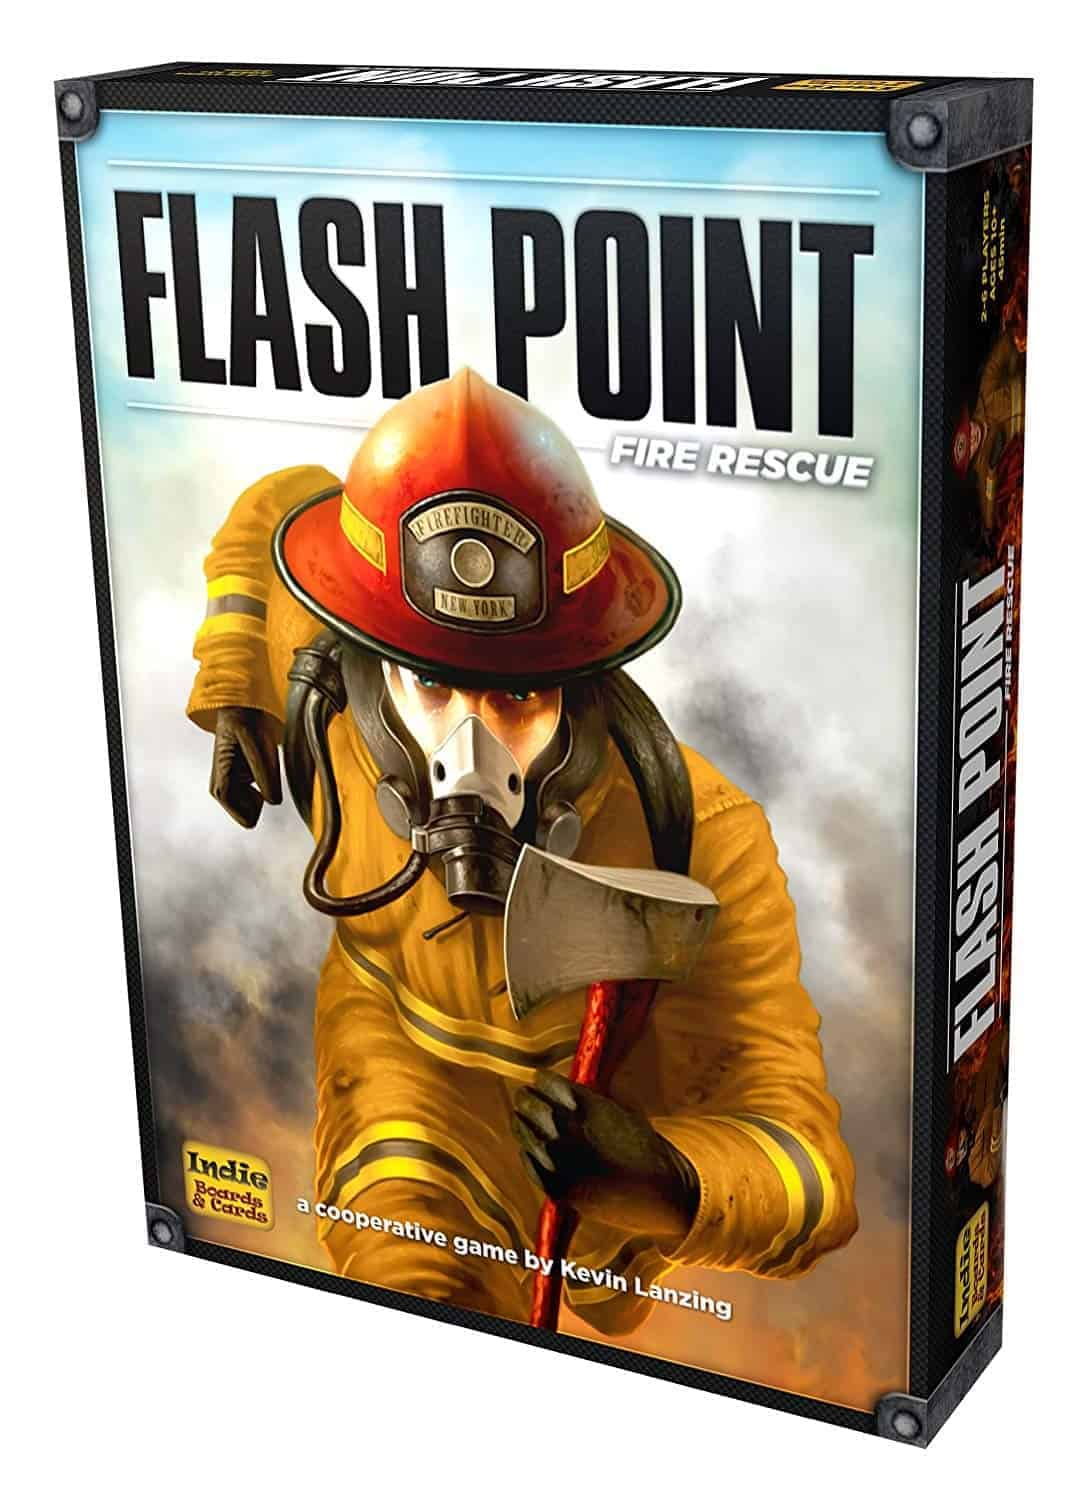 Flash Point was one of the easiest choices for our top 10 best family board games shootout.